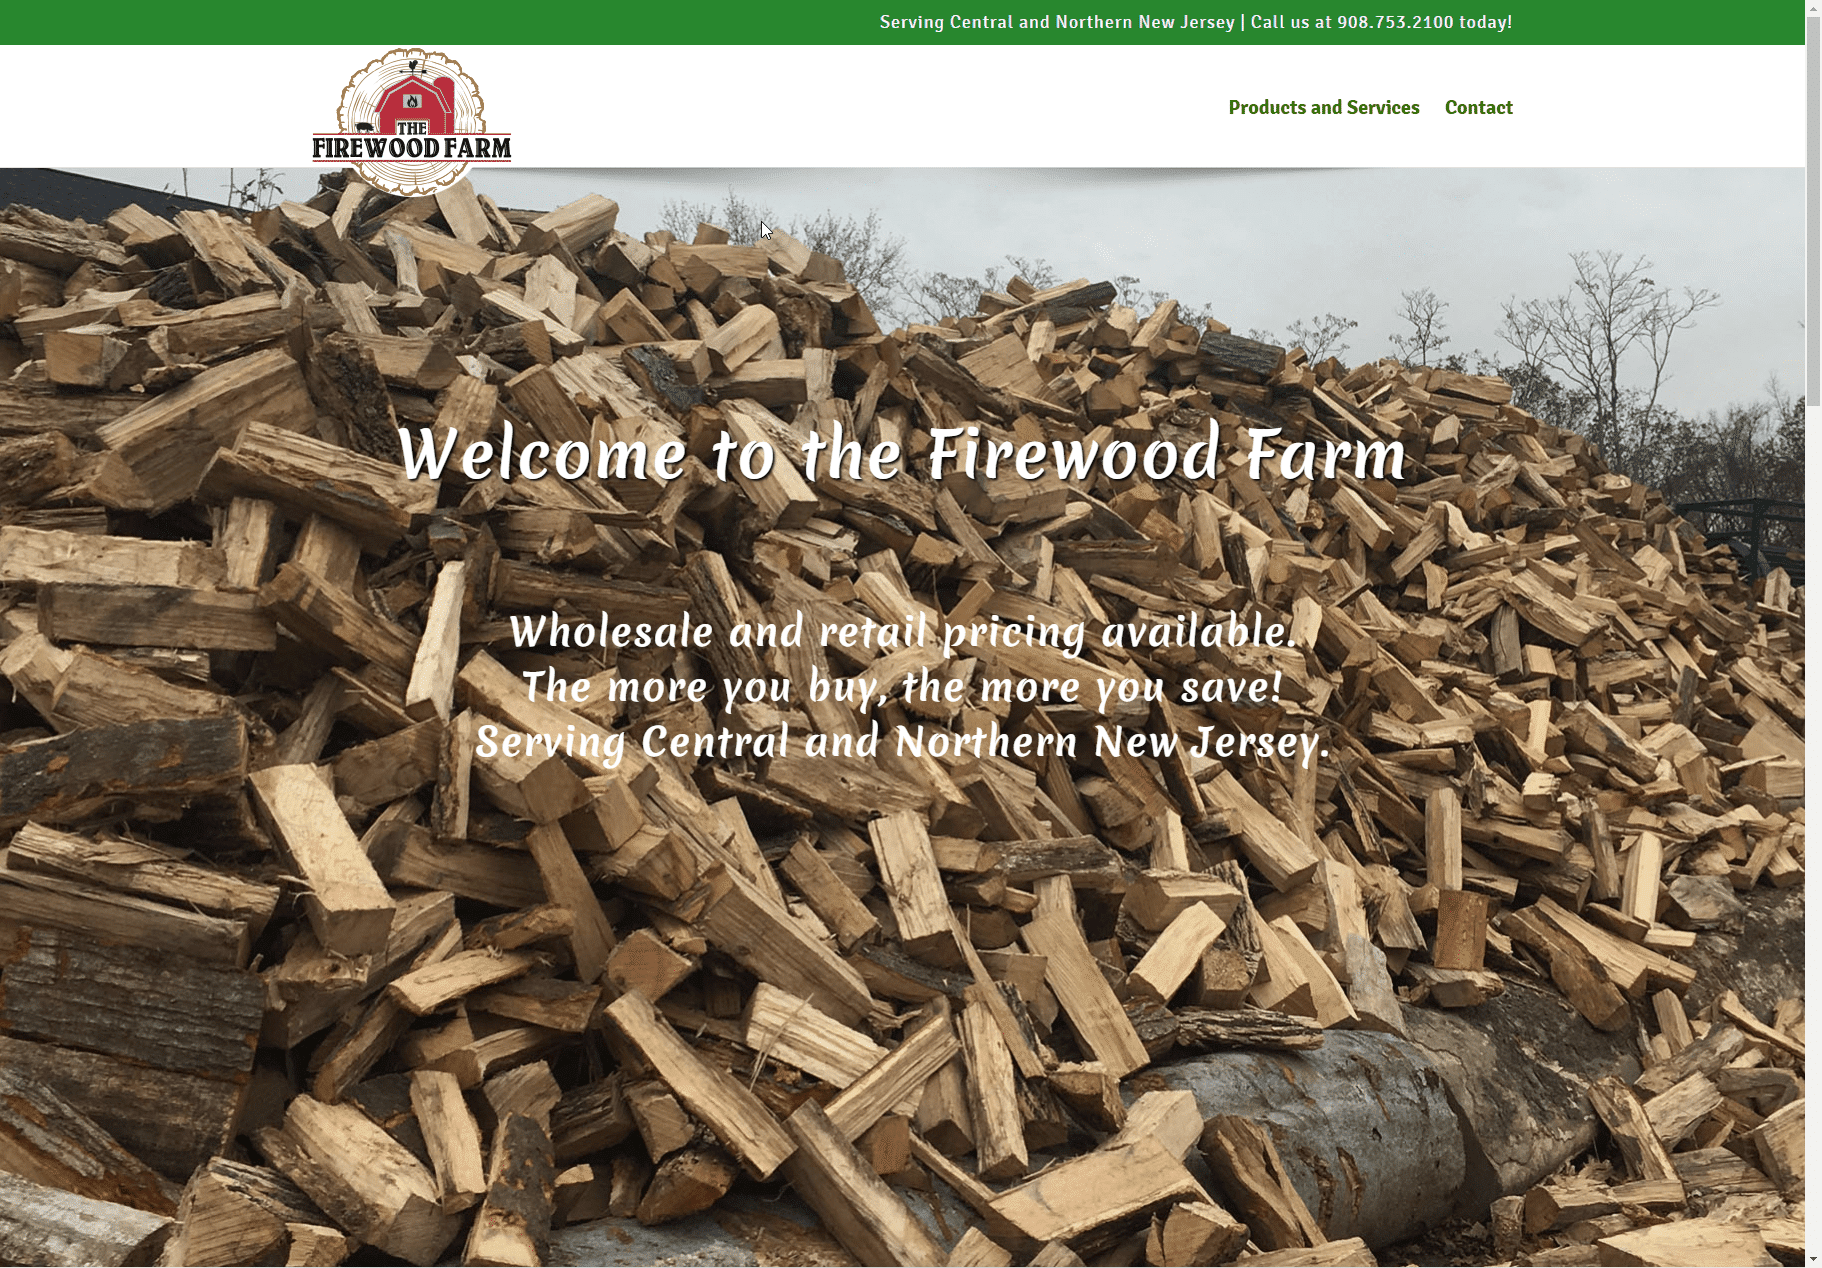 The Firewood Farm